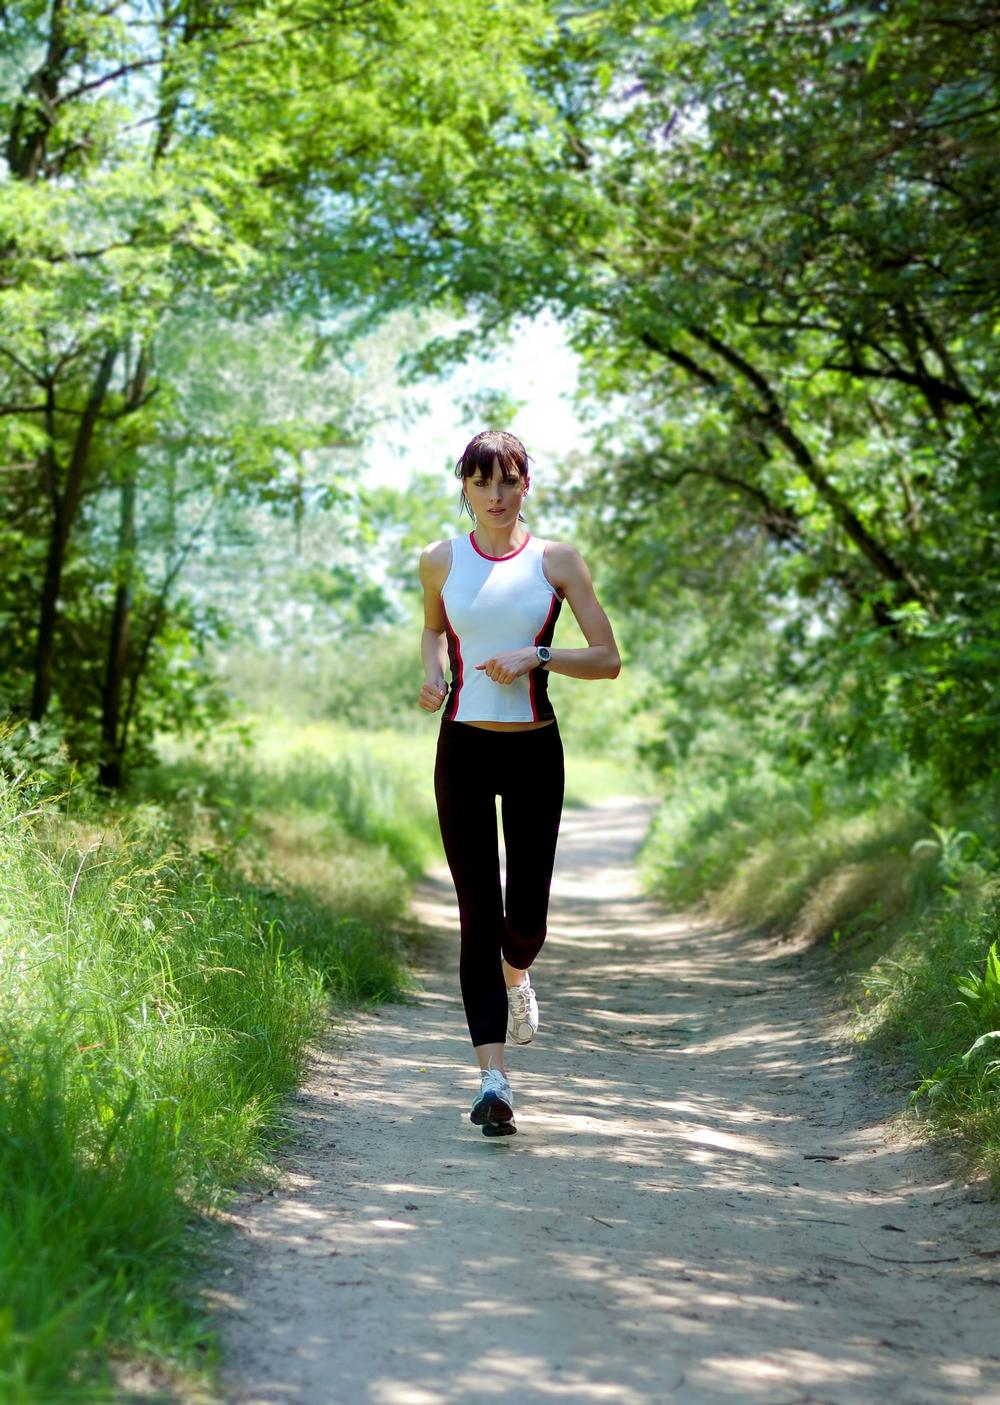 Clubs could invest in apps that monitor members' wellbeing while they work out / Photo: shutterstock.com/maxpro